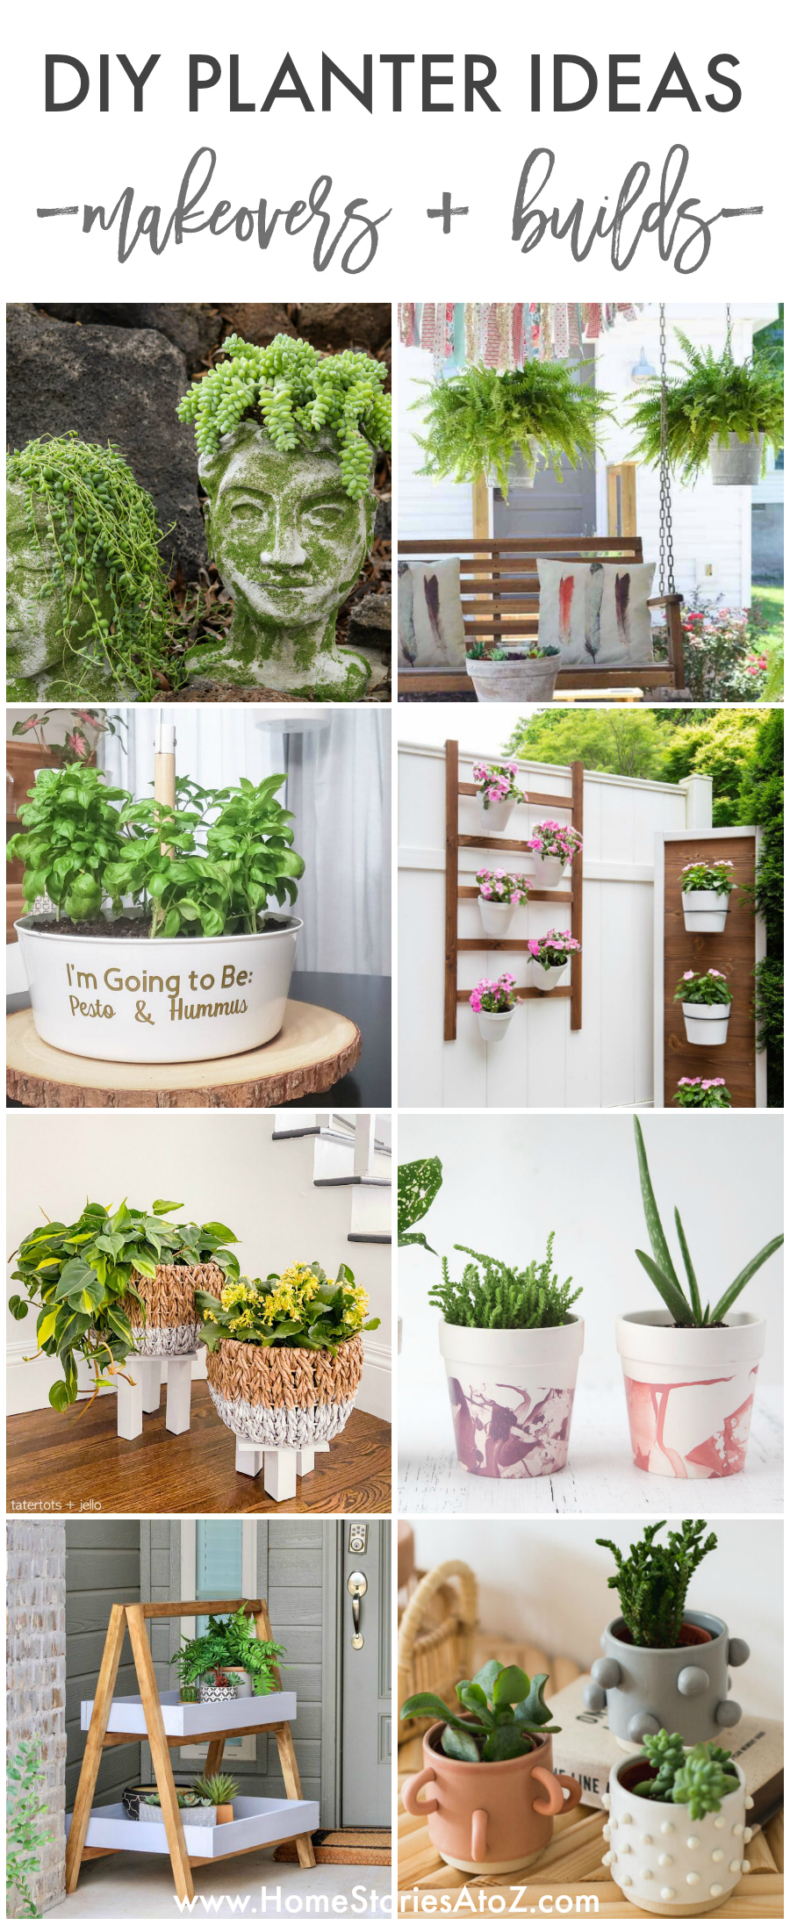 DIY Planter Ideas - How to Build a Planter, Planter Makeovers, and Plant Stands